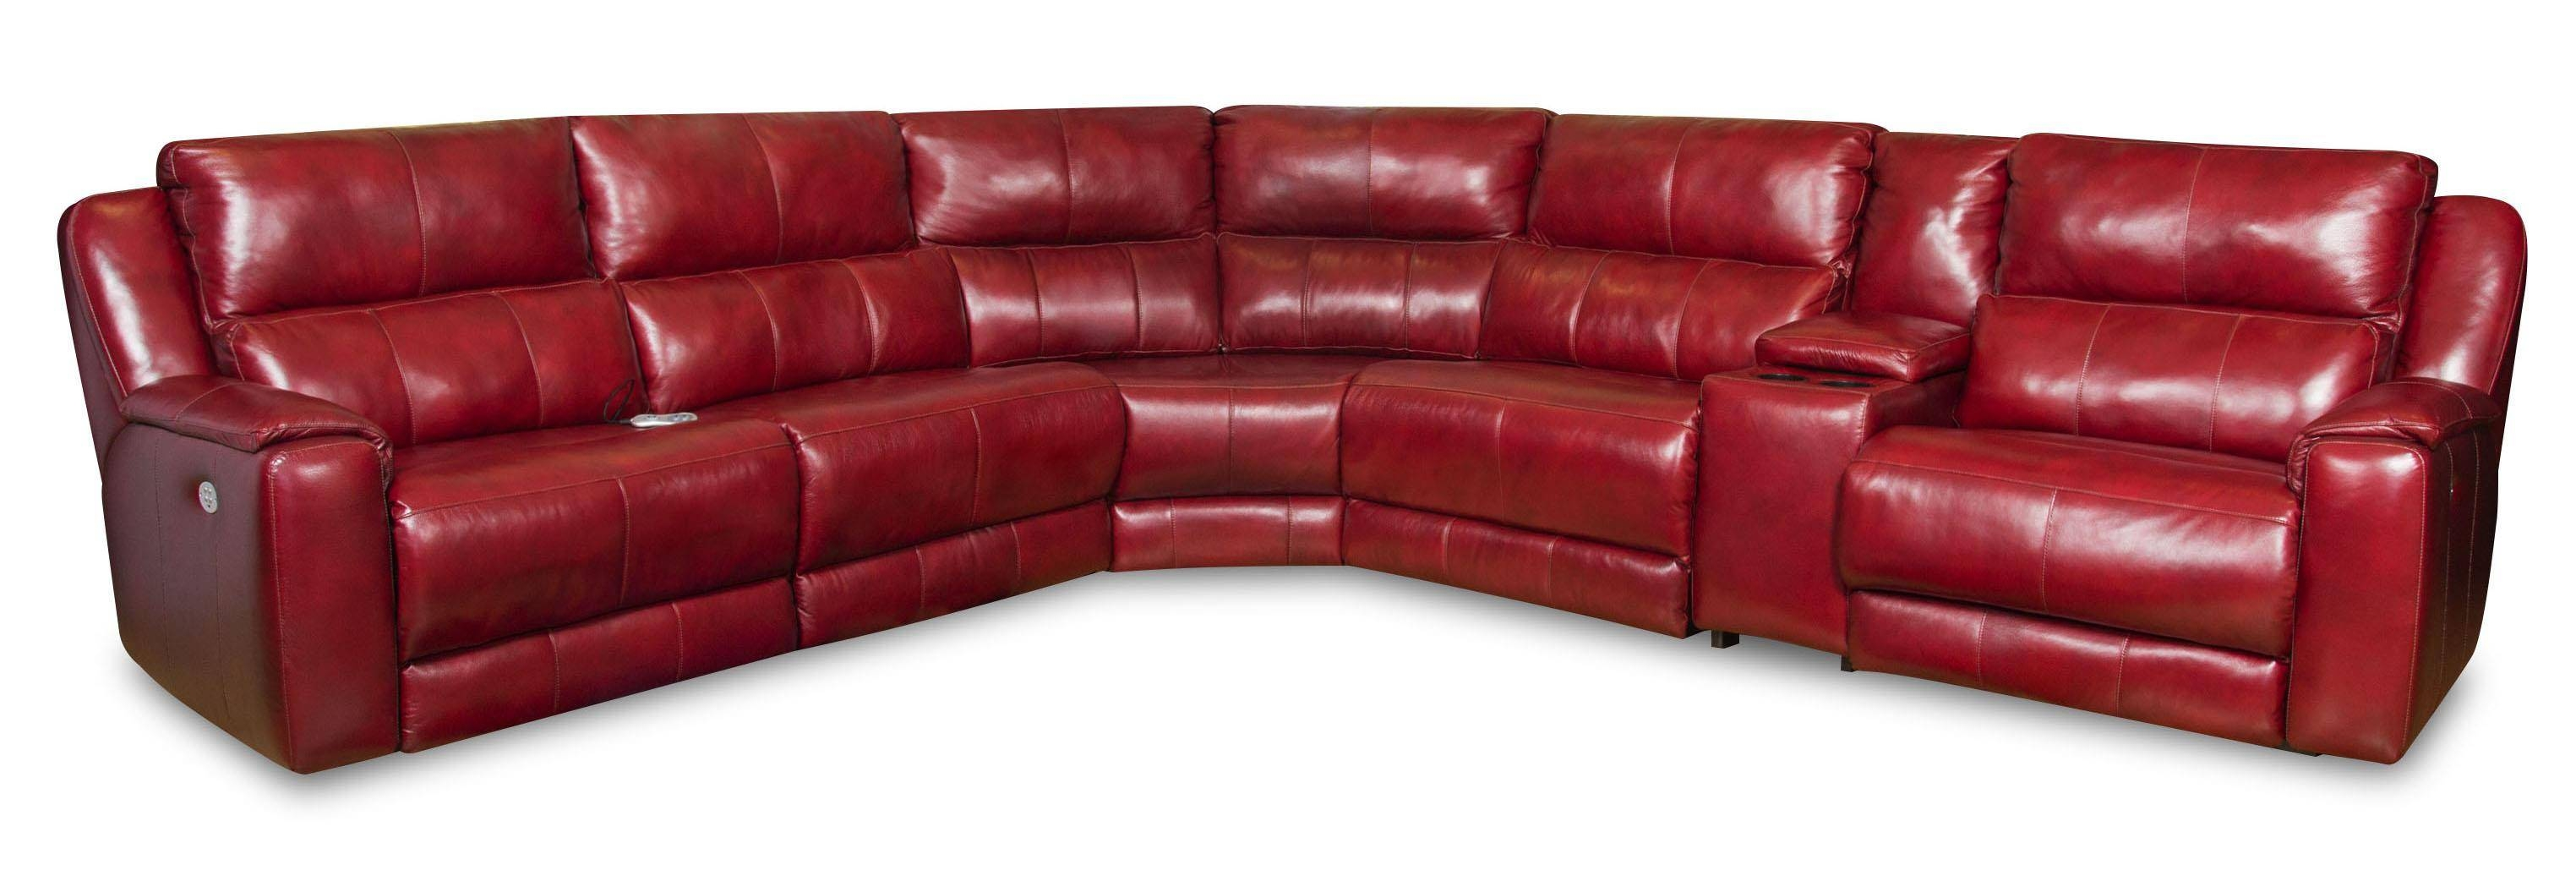 Southern Motion Leather Sofa | Tehranmix Decoration regarding Motion Sectional Sofas (Image 24 of 30)